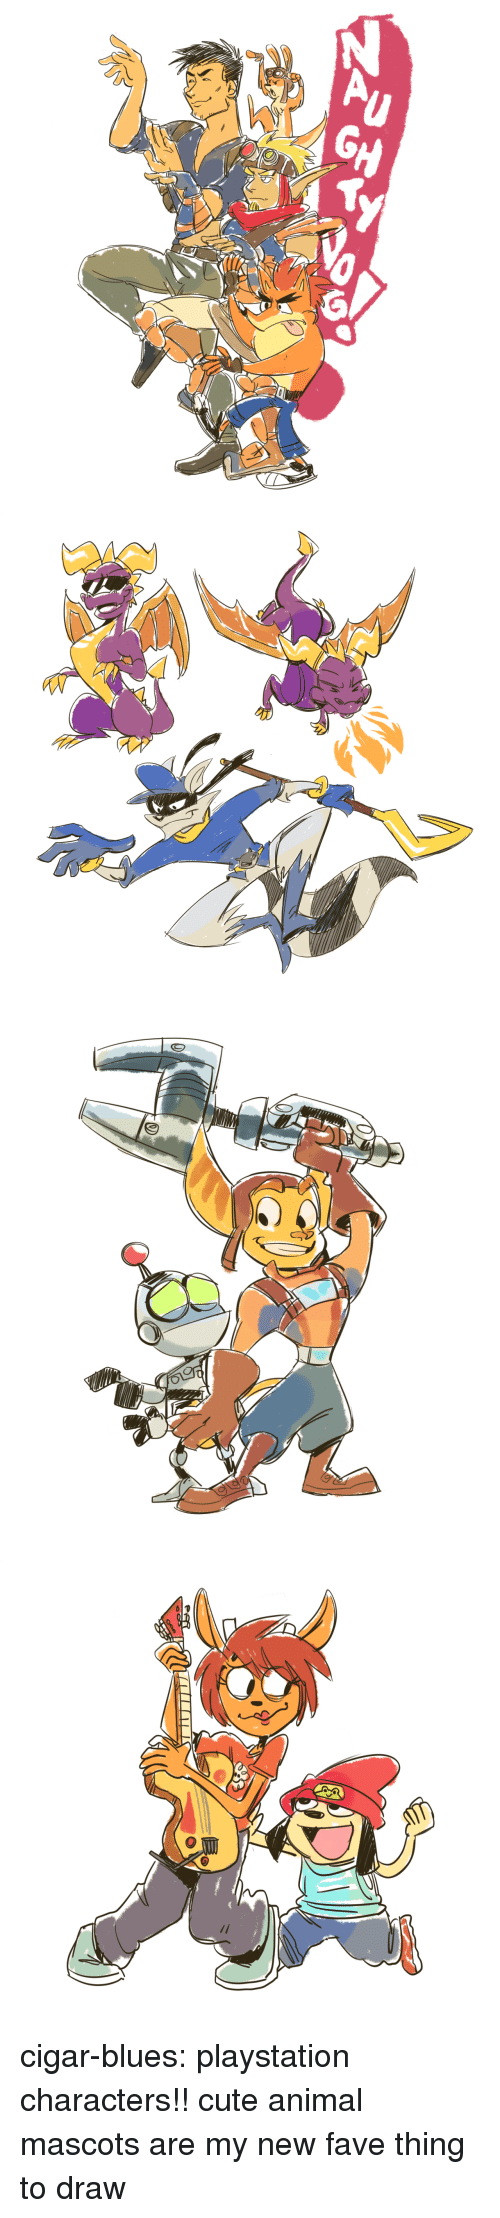 cigar: cigar-blues:  playstation characters!! cute animal mascots are my new fave thing to draw